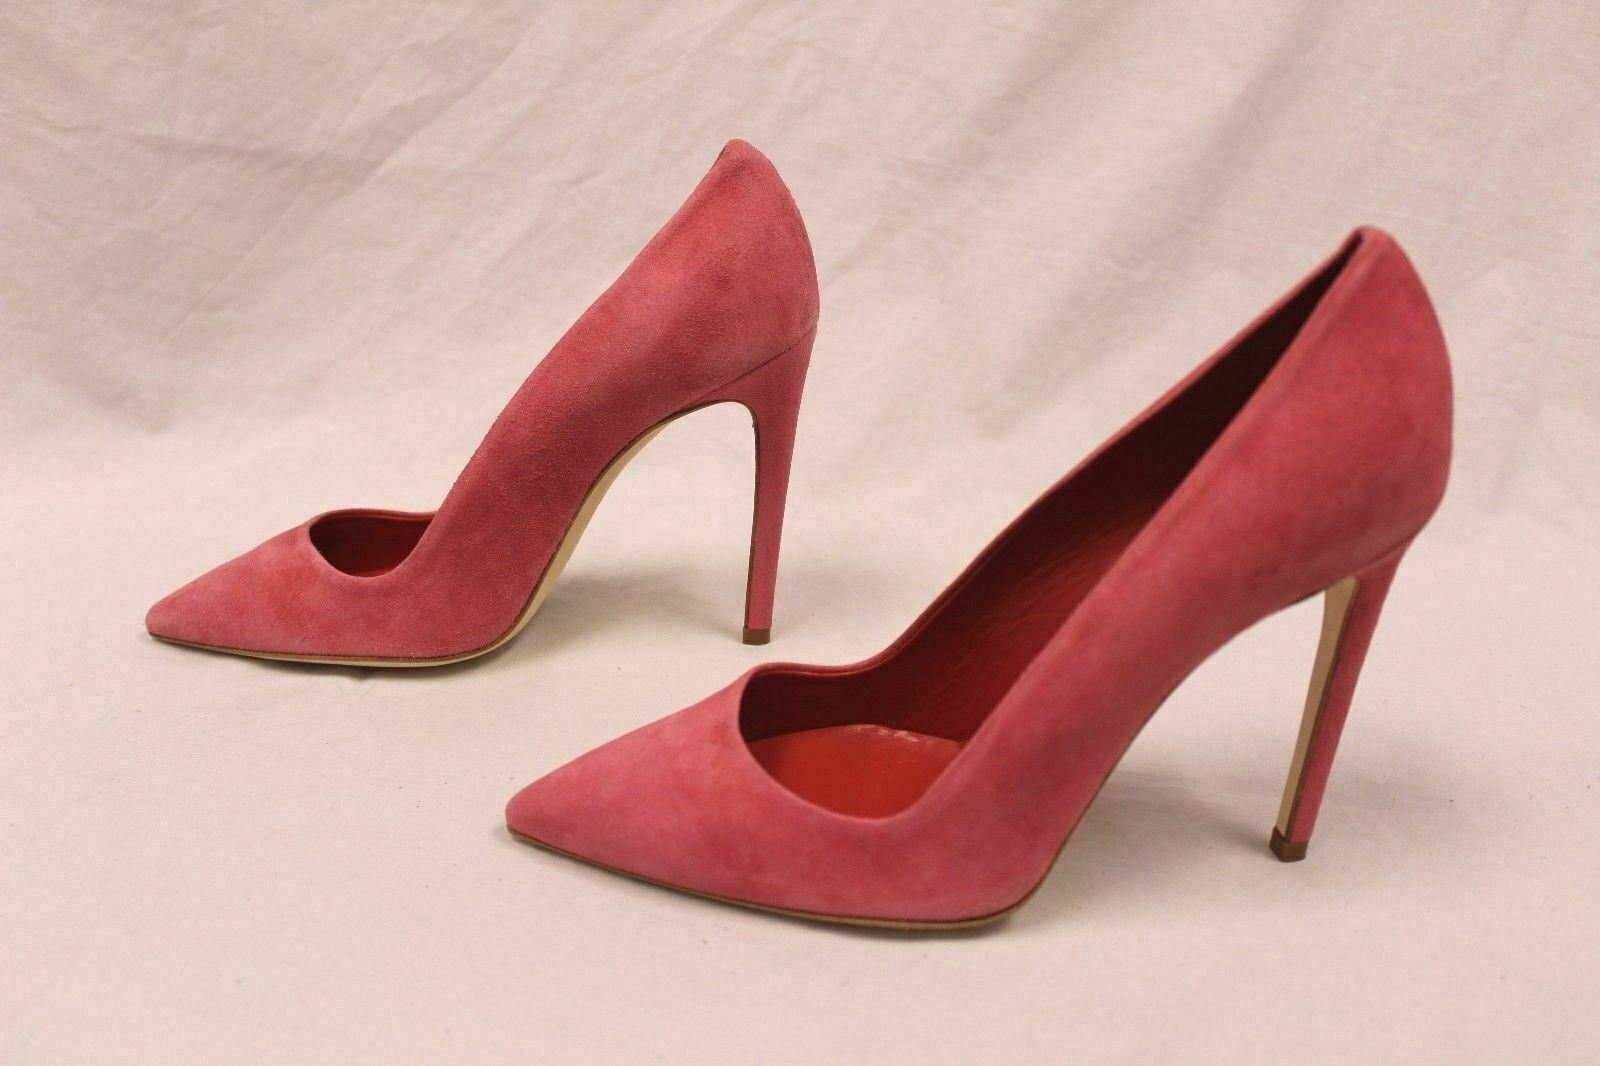 Dee Keller Womens Portia Suede Leather Pumps Papaya GG8 Size IT 39 US 9 New  297